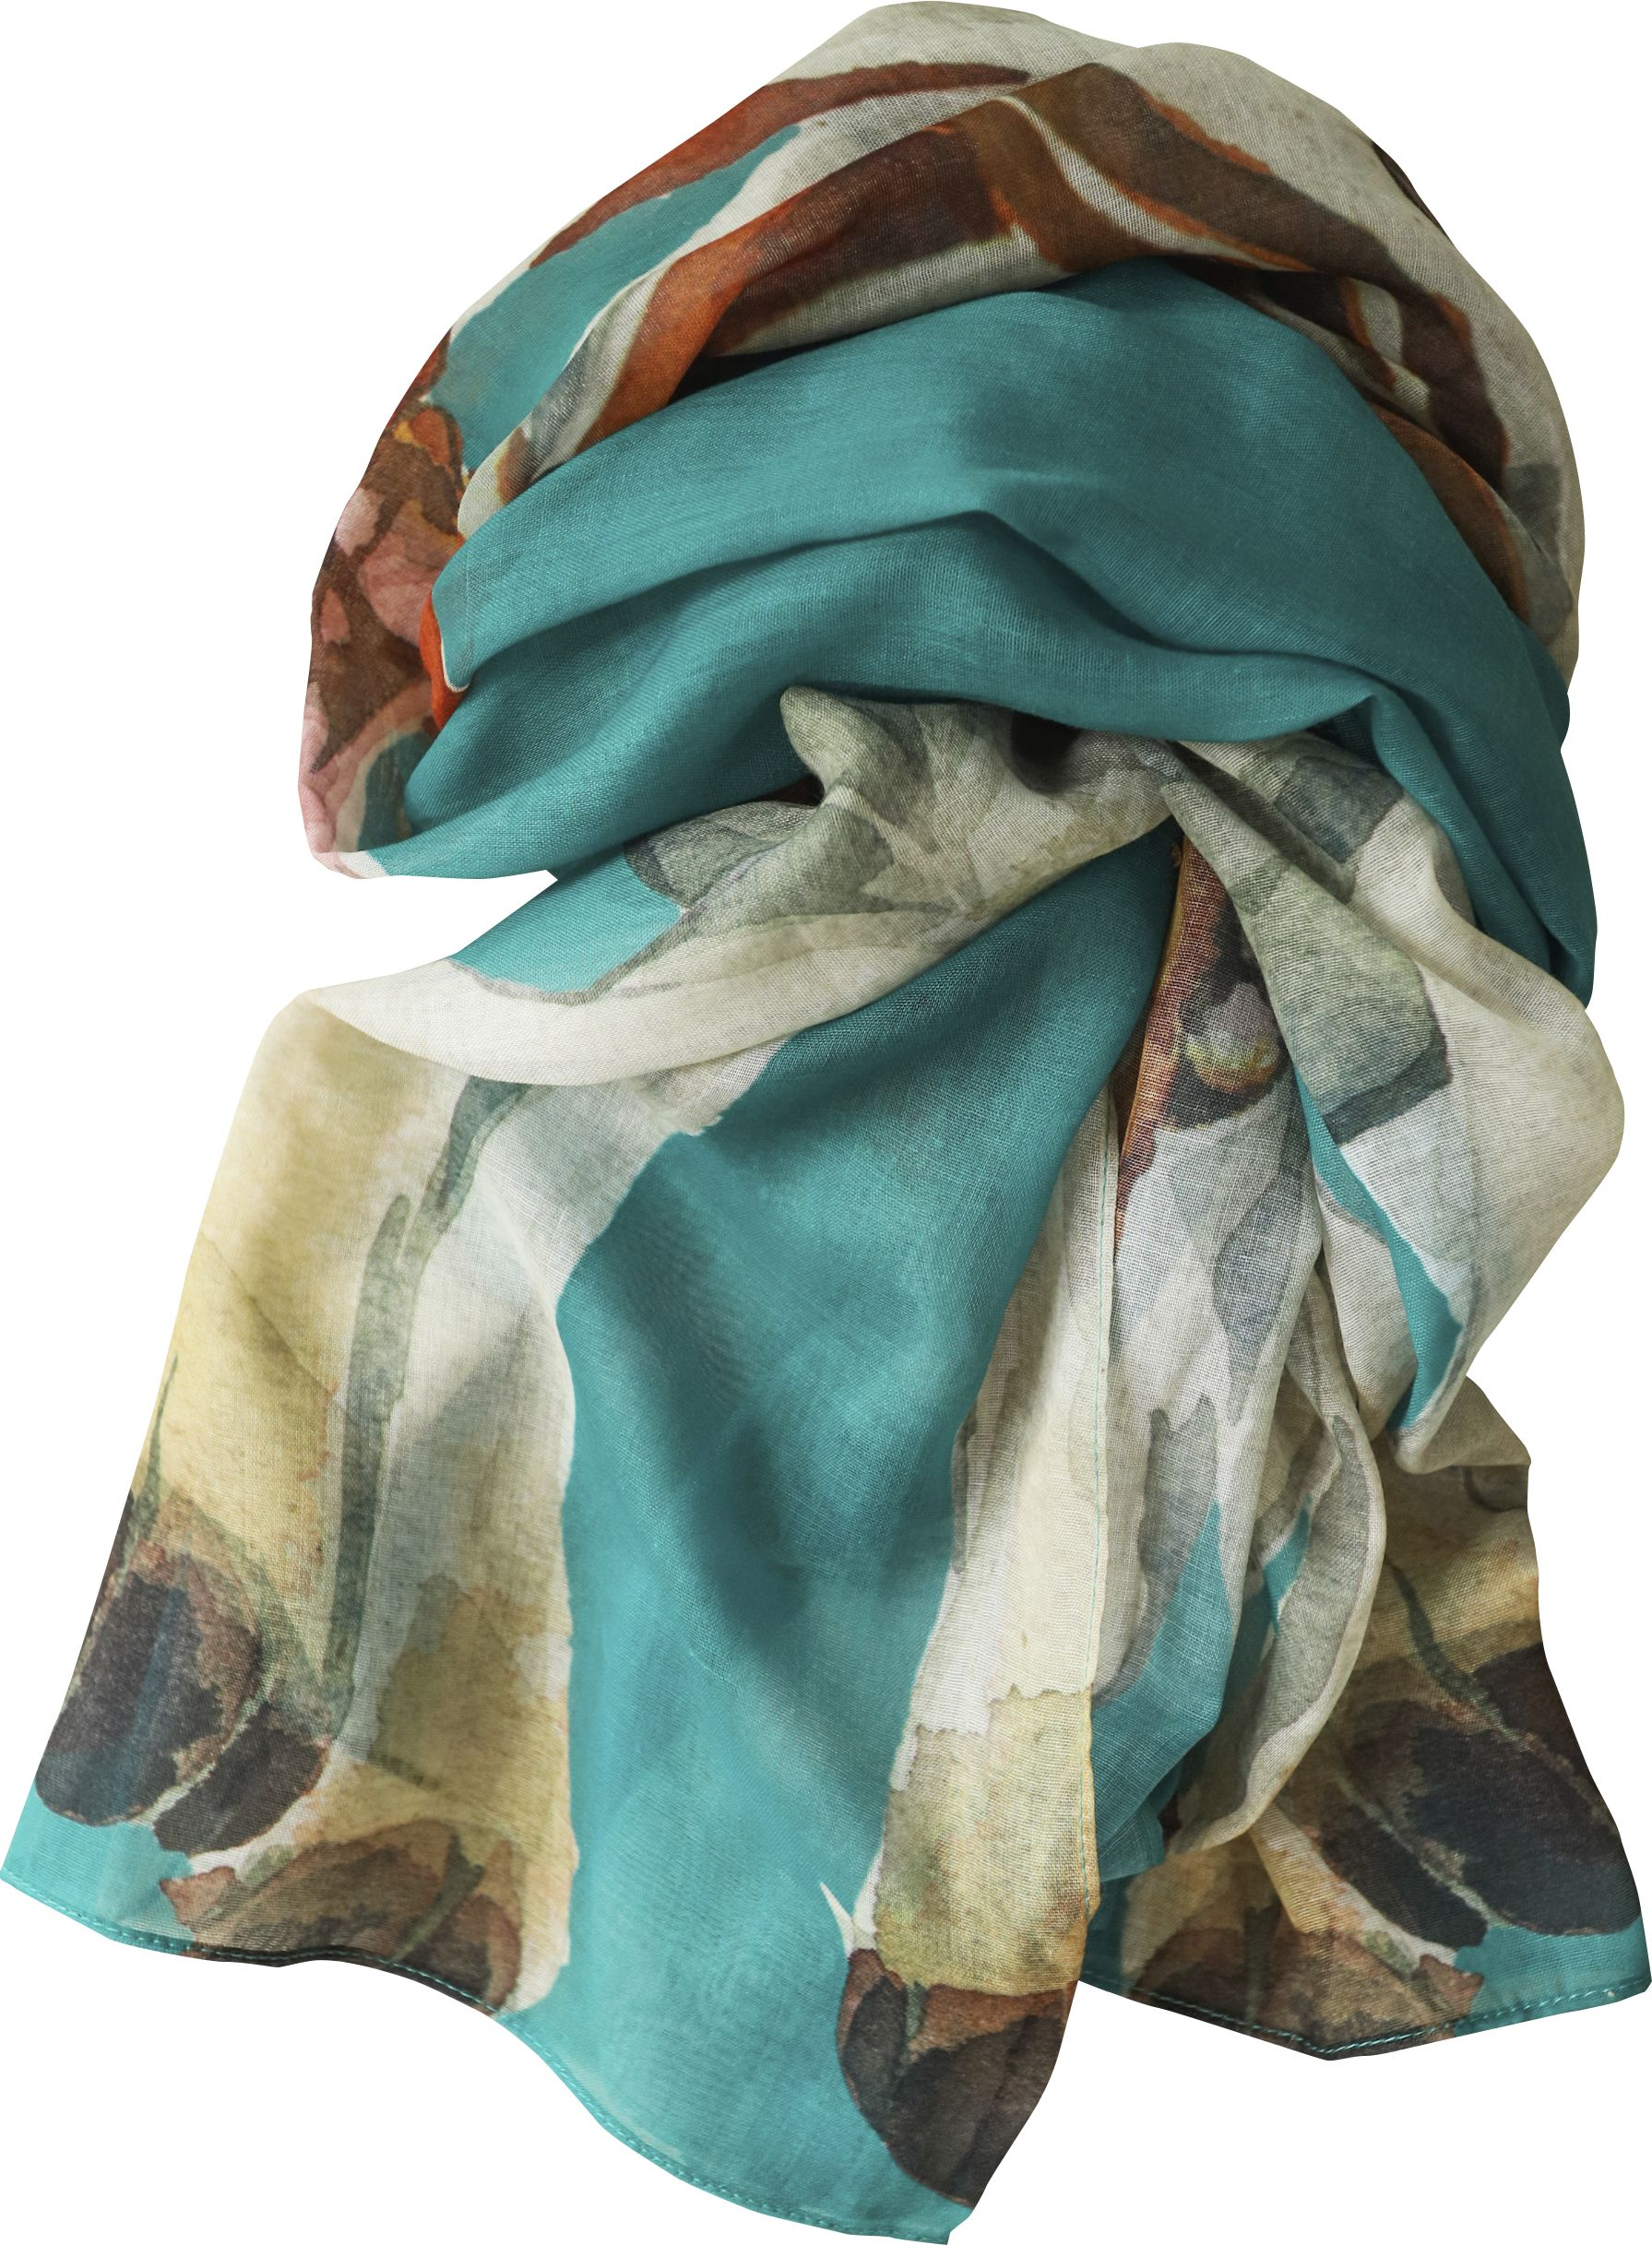 Casual Scarf, Hound Teal NEW! image